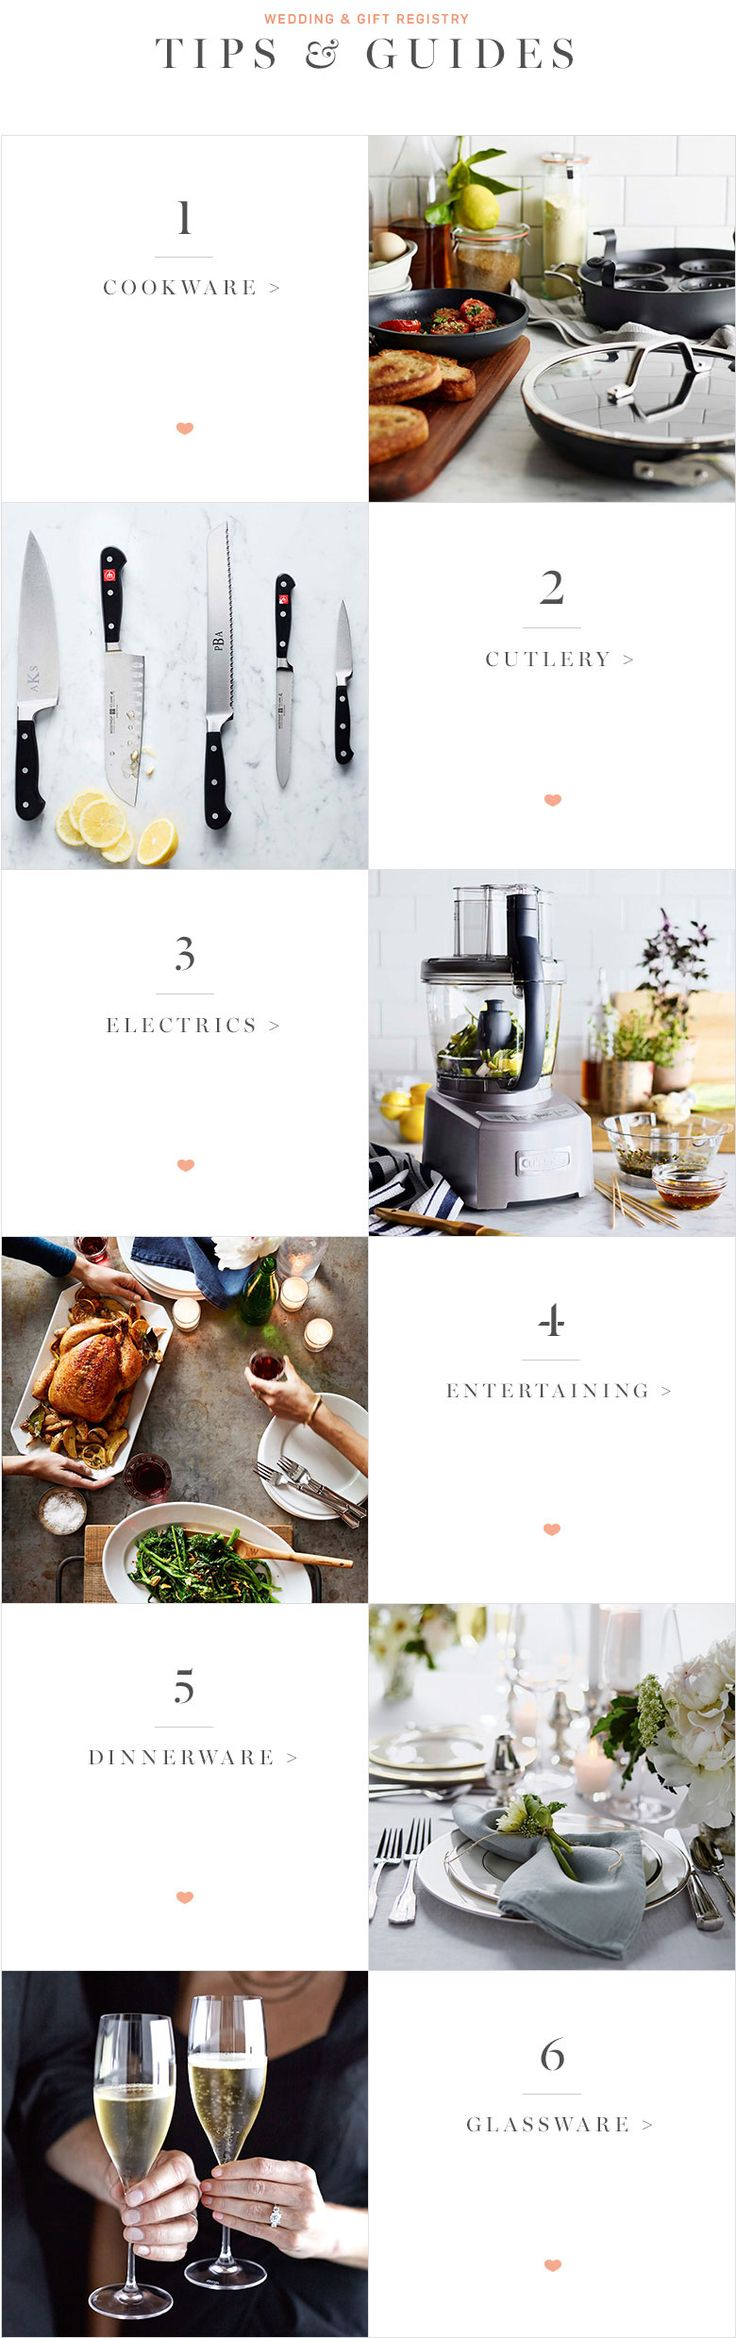 Registry Tips and Guides WilliamsSonoma Wedding tips